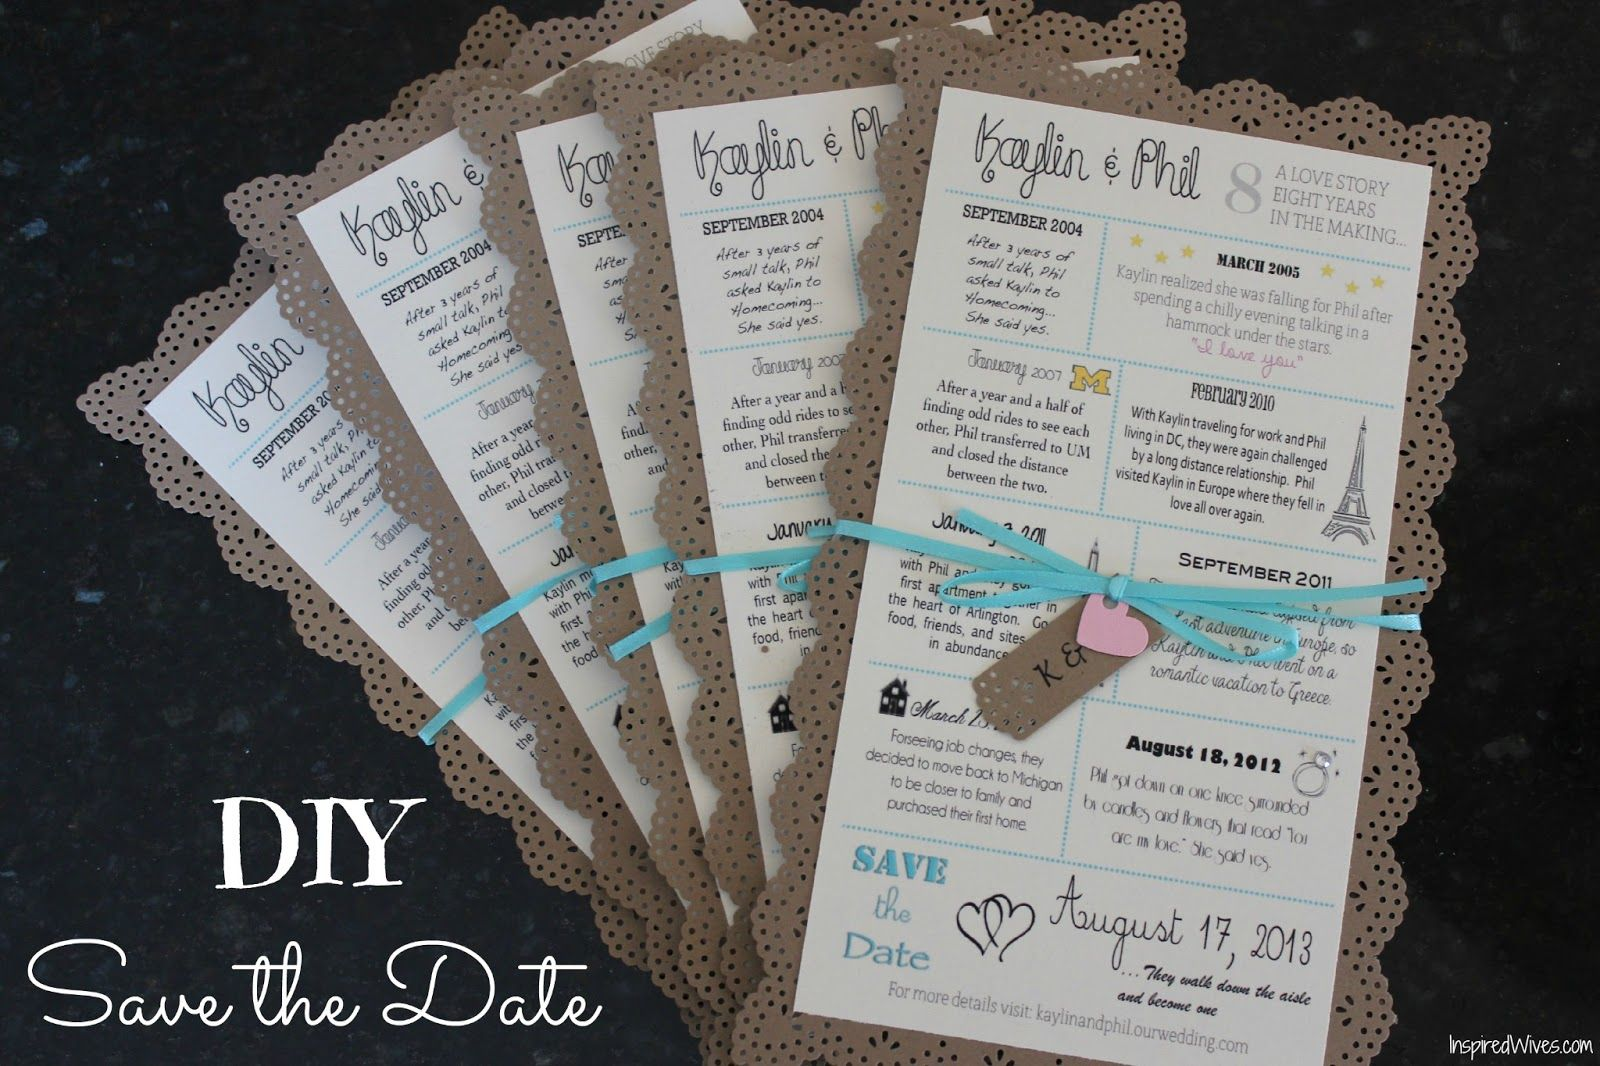 Inspired Wives: Story of Us DIY Save the Date